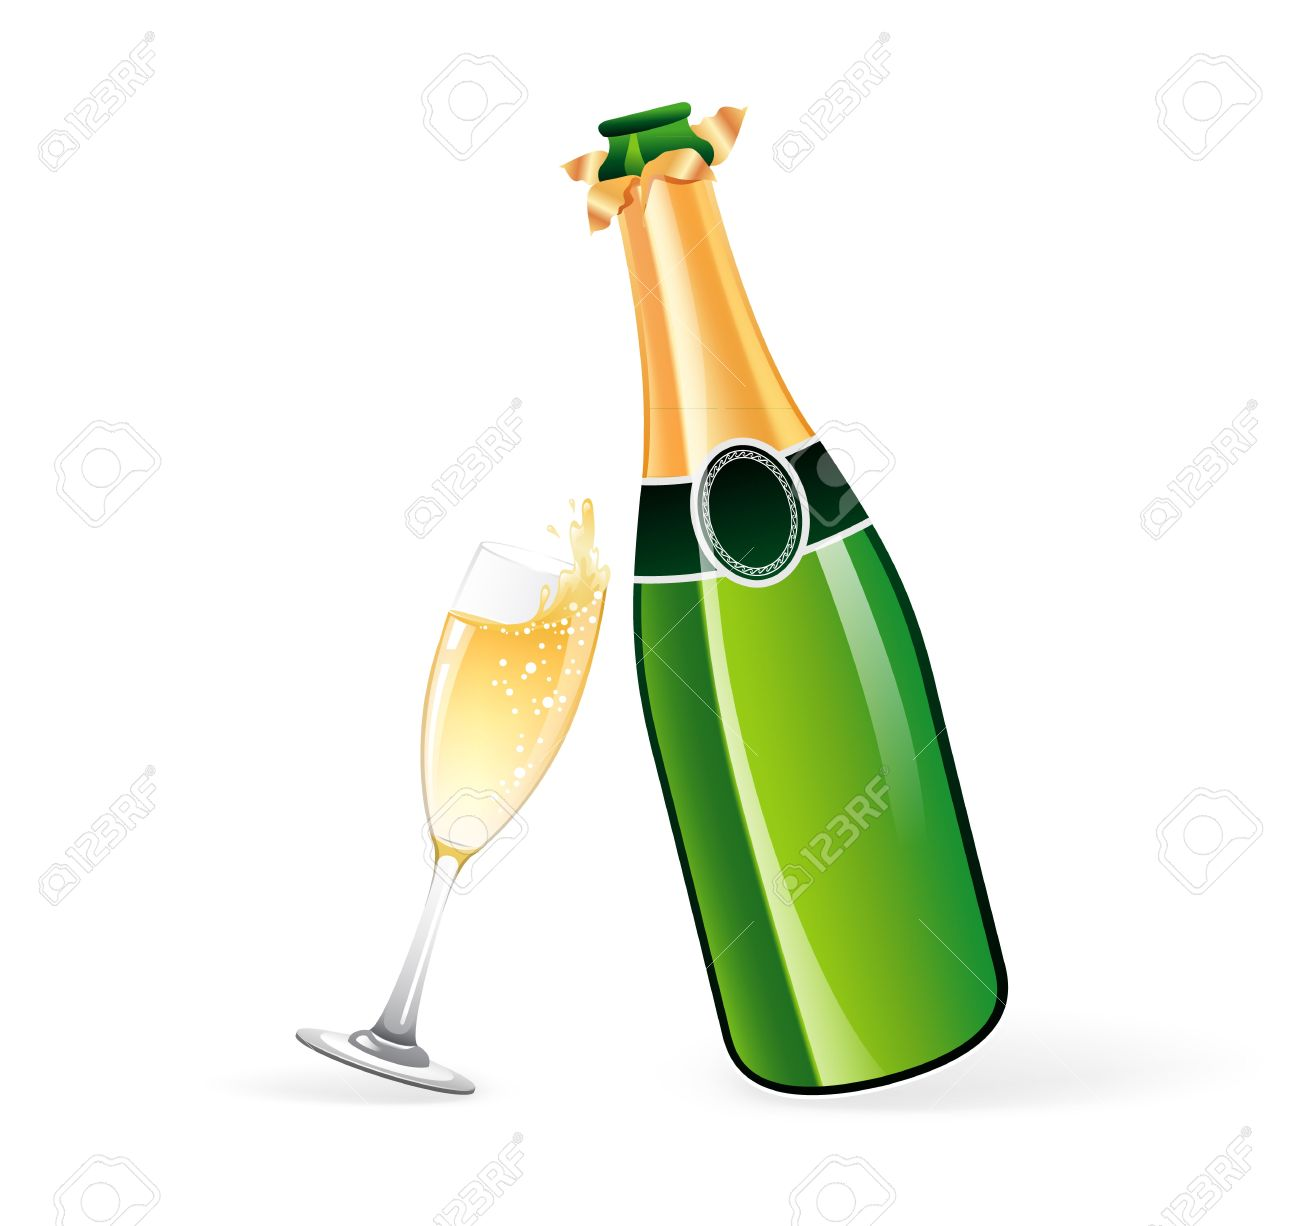 Champagne clipart free download vector transparent download Champagne bottle clipart free download jpg 2 - Clipartix vector transparent download